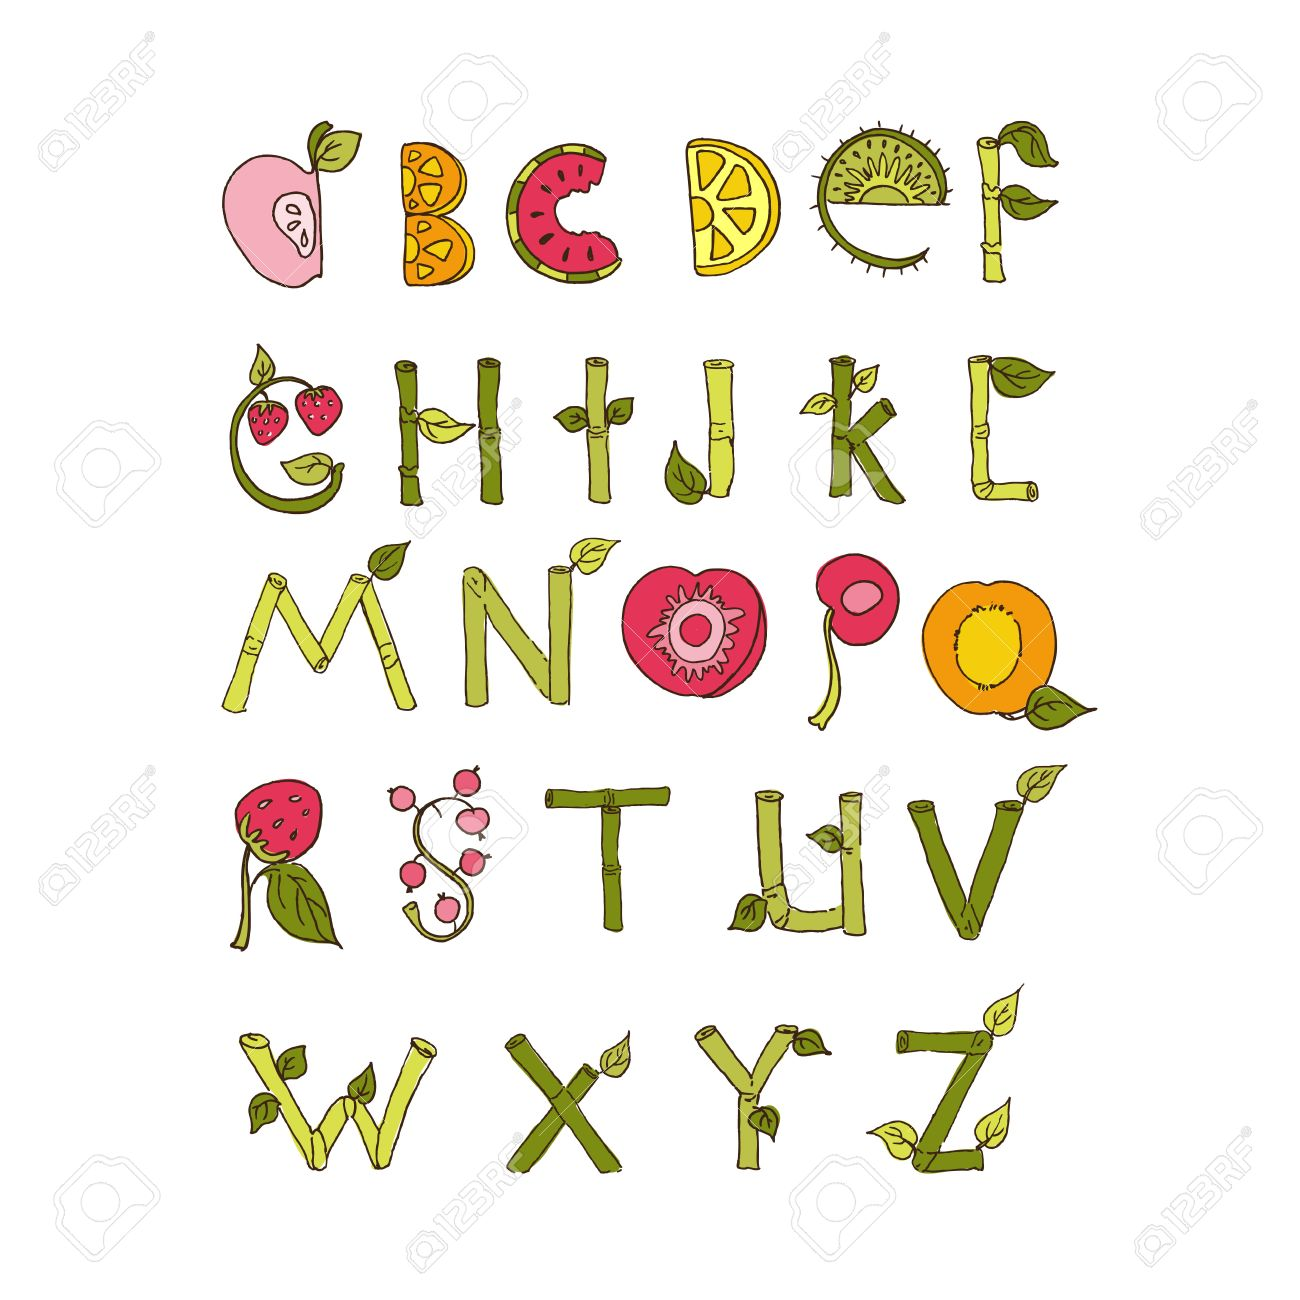 27304611-Main-dessin-e-alphabet-l-ments-de-la-nature-et-de-fruits-police-de-Doodle--Banque-d'images